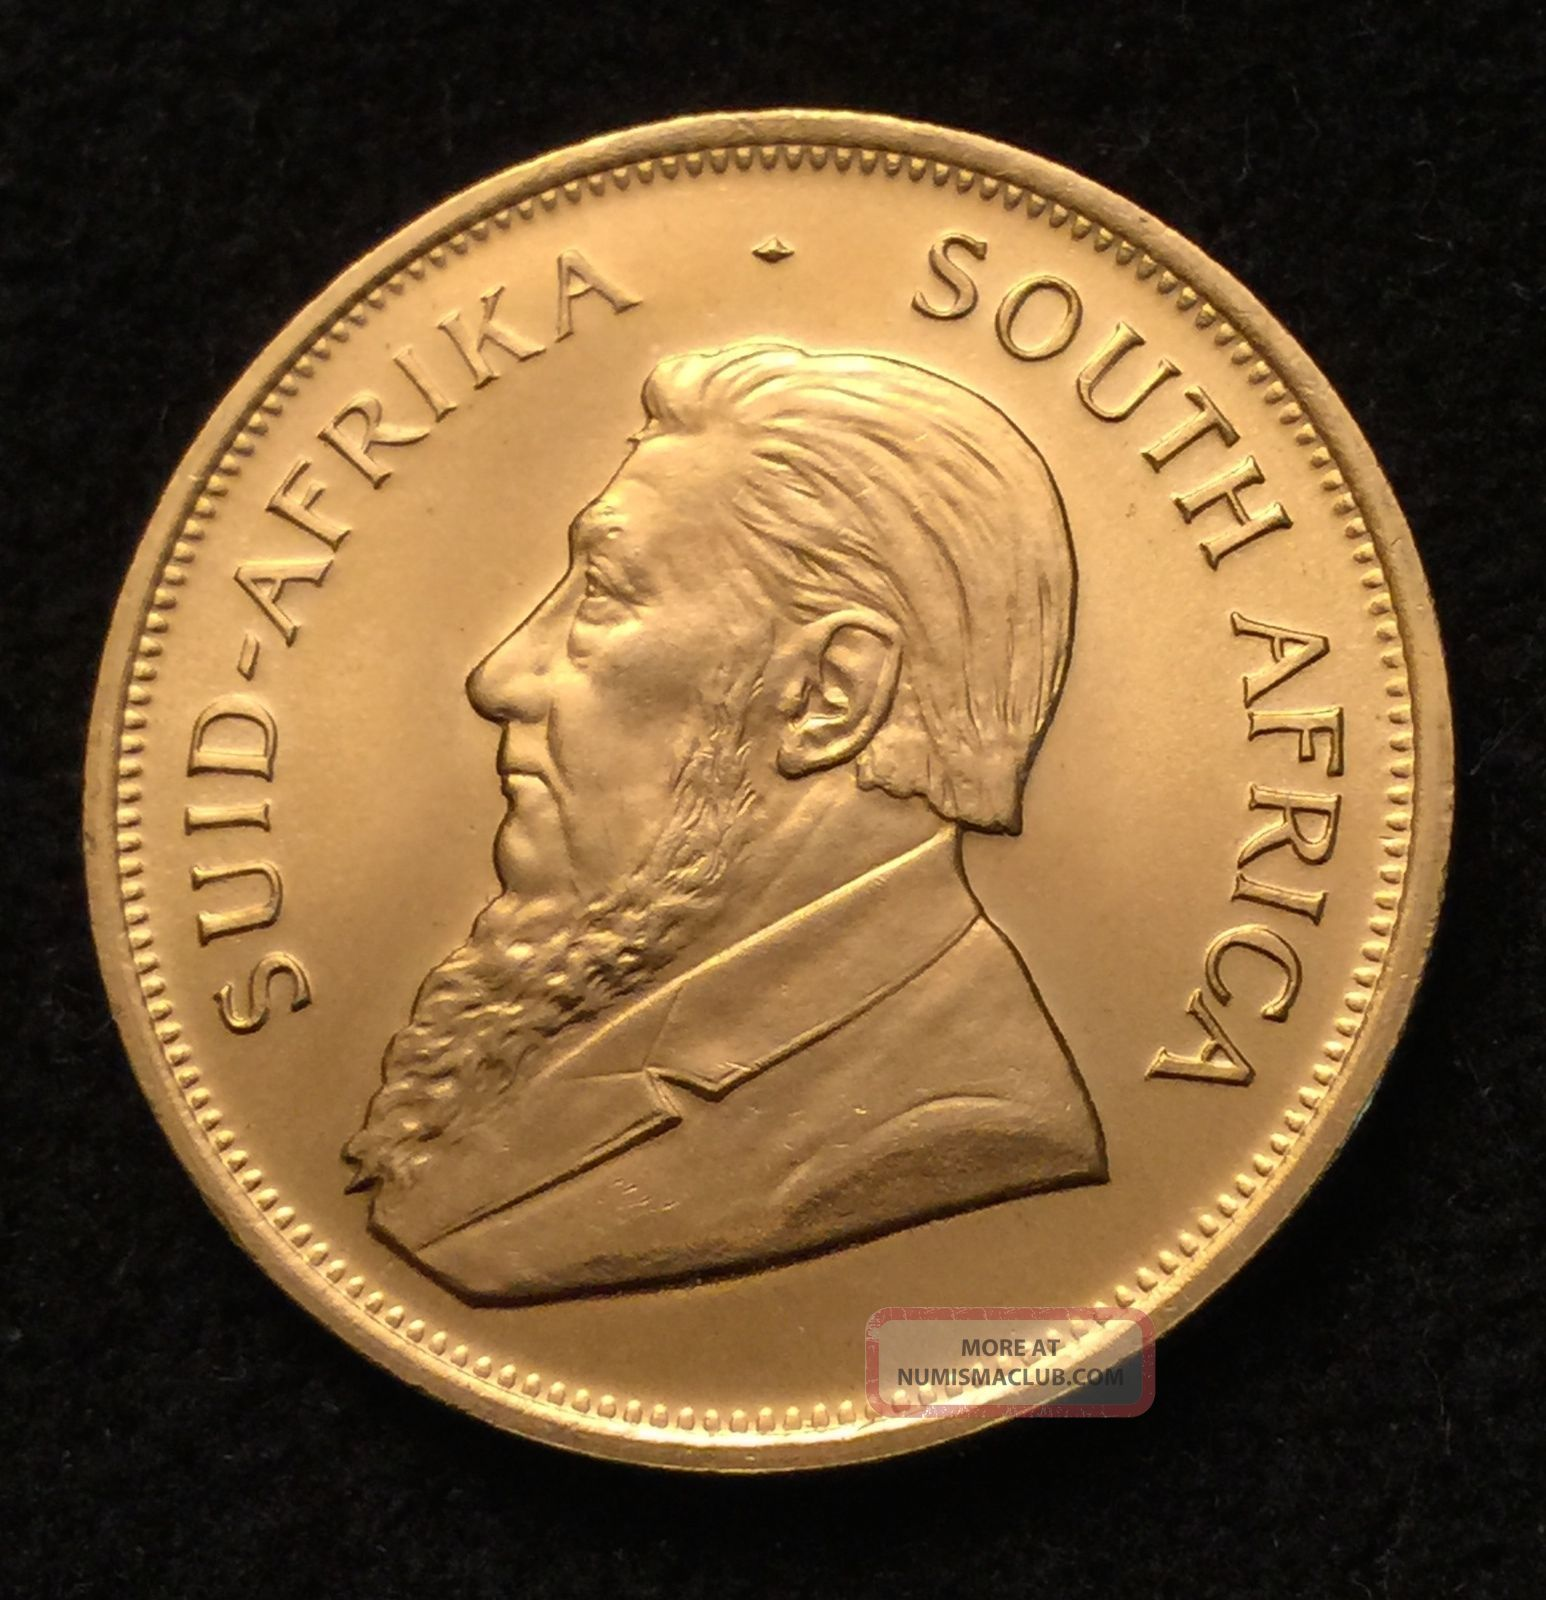 1983 1 Oz South African Gold Krugerrand Bullion Coin 22 Kt Pure Gold